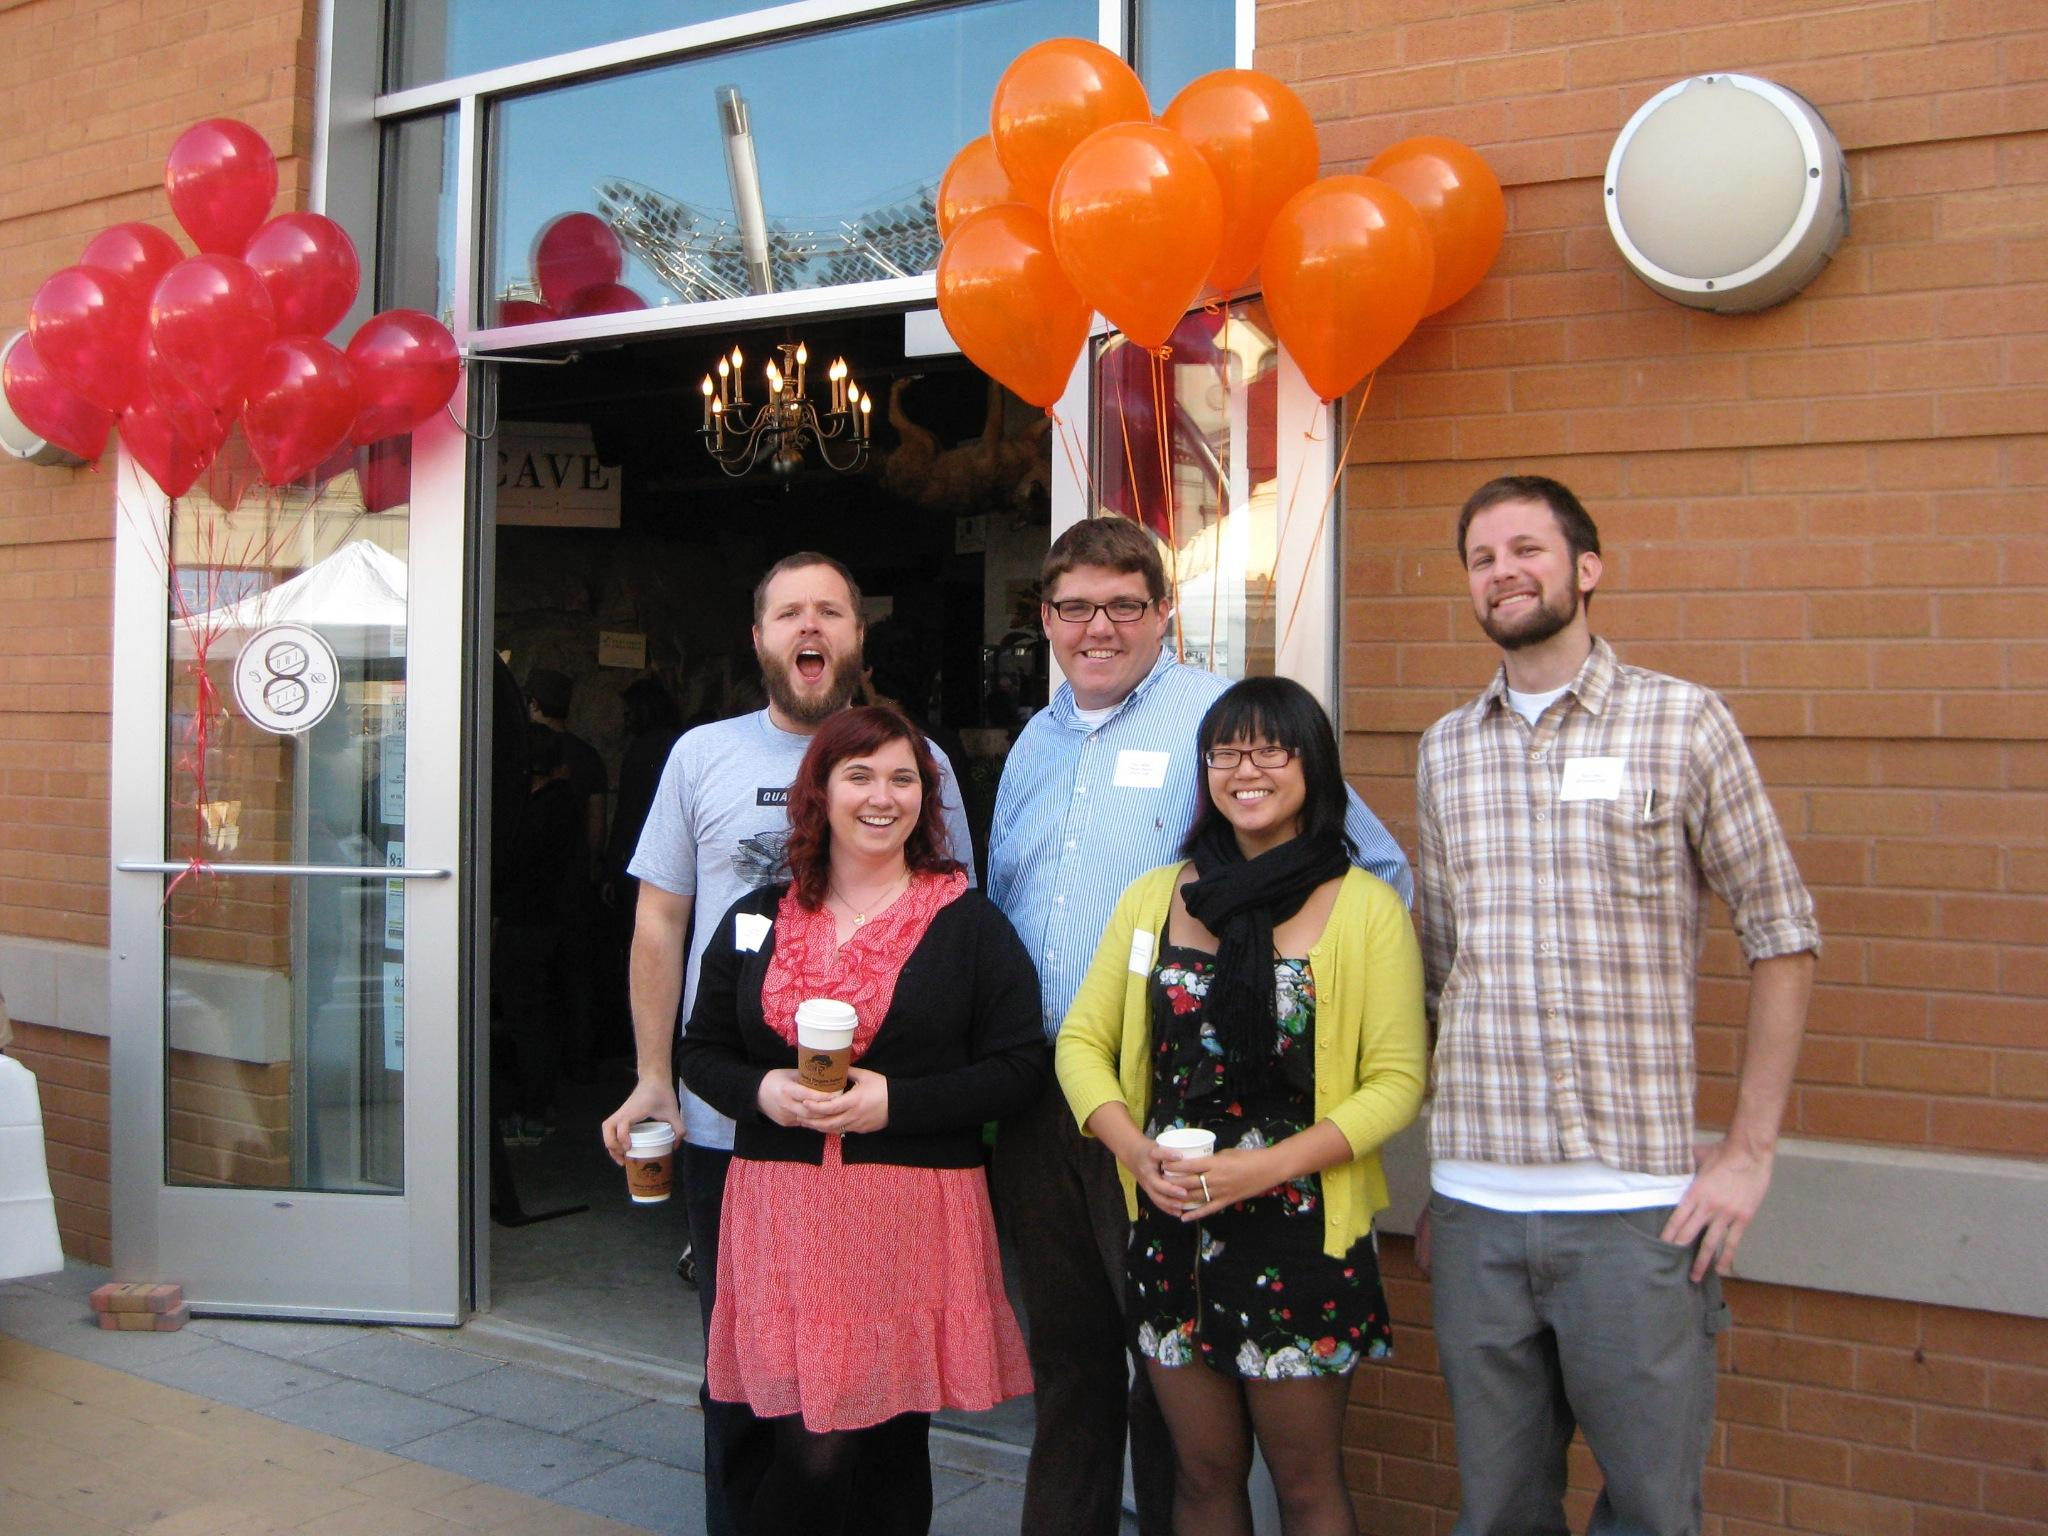 It's #TBT - so let's go back to FOUR YEARS AGO TODAY when we kicked open the doors to our center! http://t.co/qvo0mQpXpK